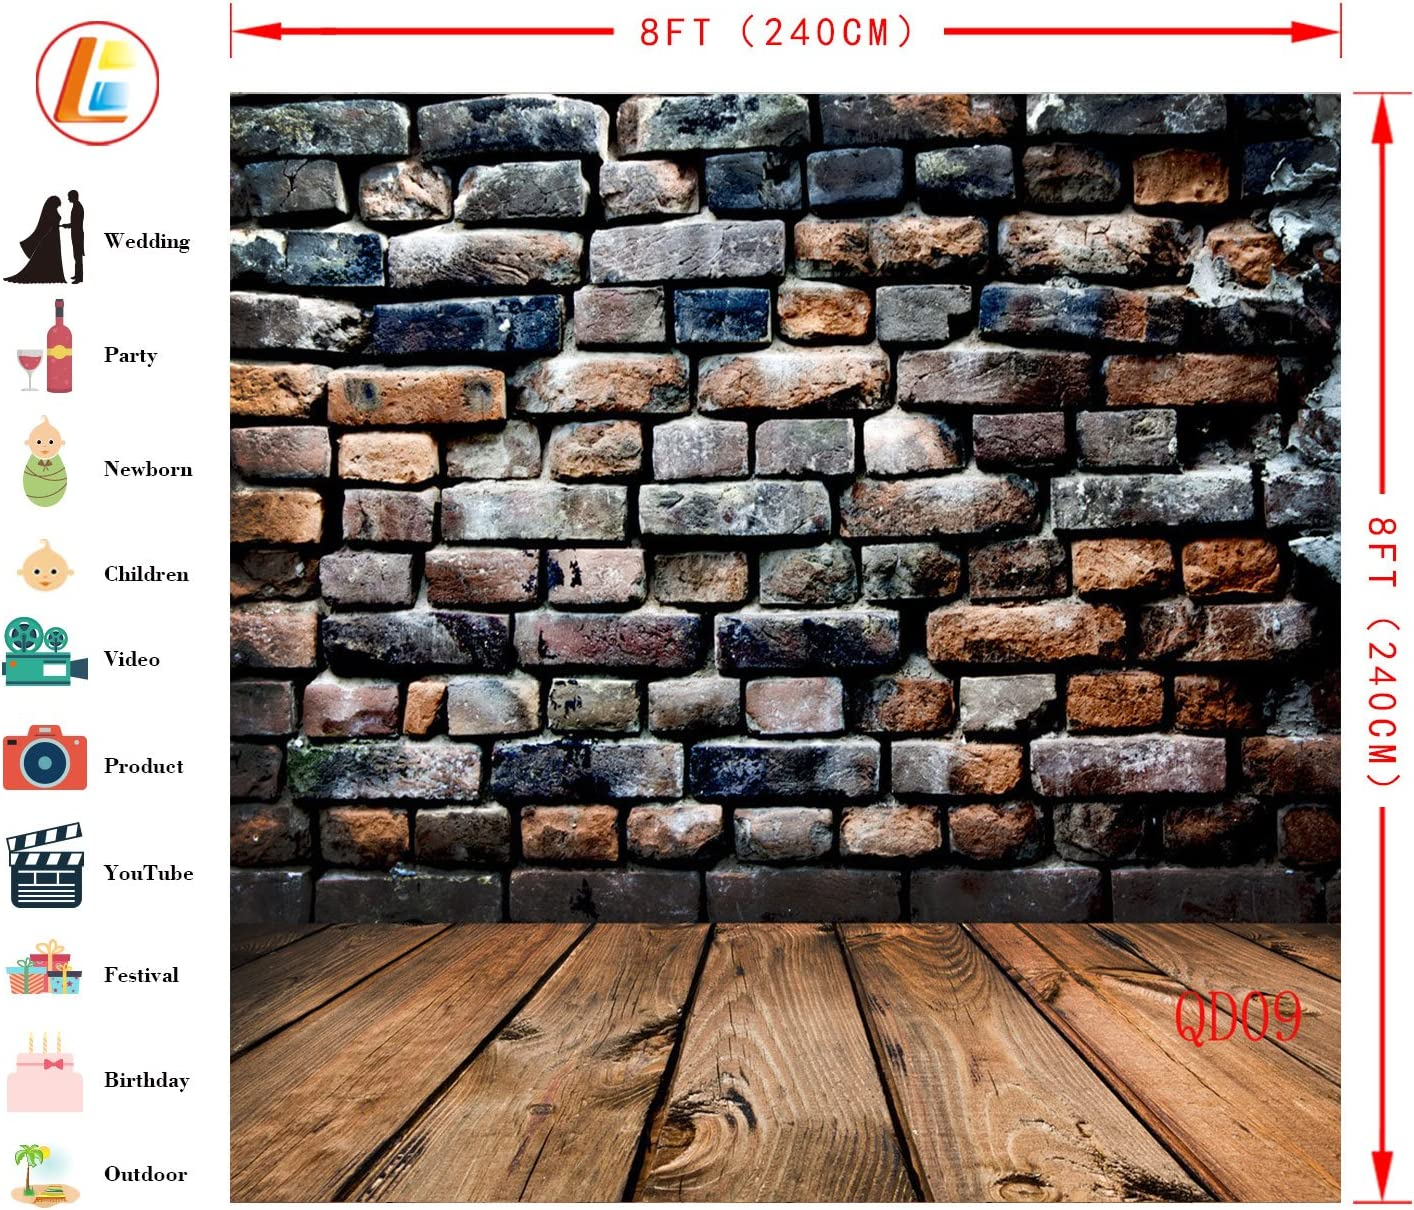 LB Black Brick Wall Background for Photography 10x10ft Vinyl Wood Floor Photography Backdrops for Wedding Smash Cake Birthday Party Portraits Photo Booth Backdrop